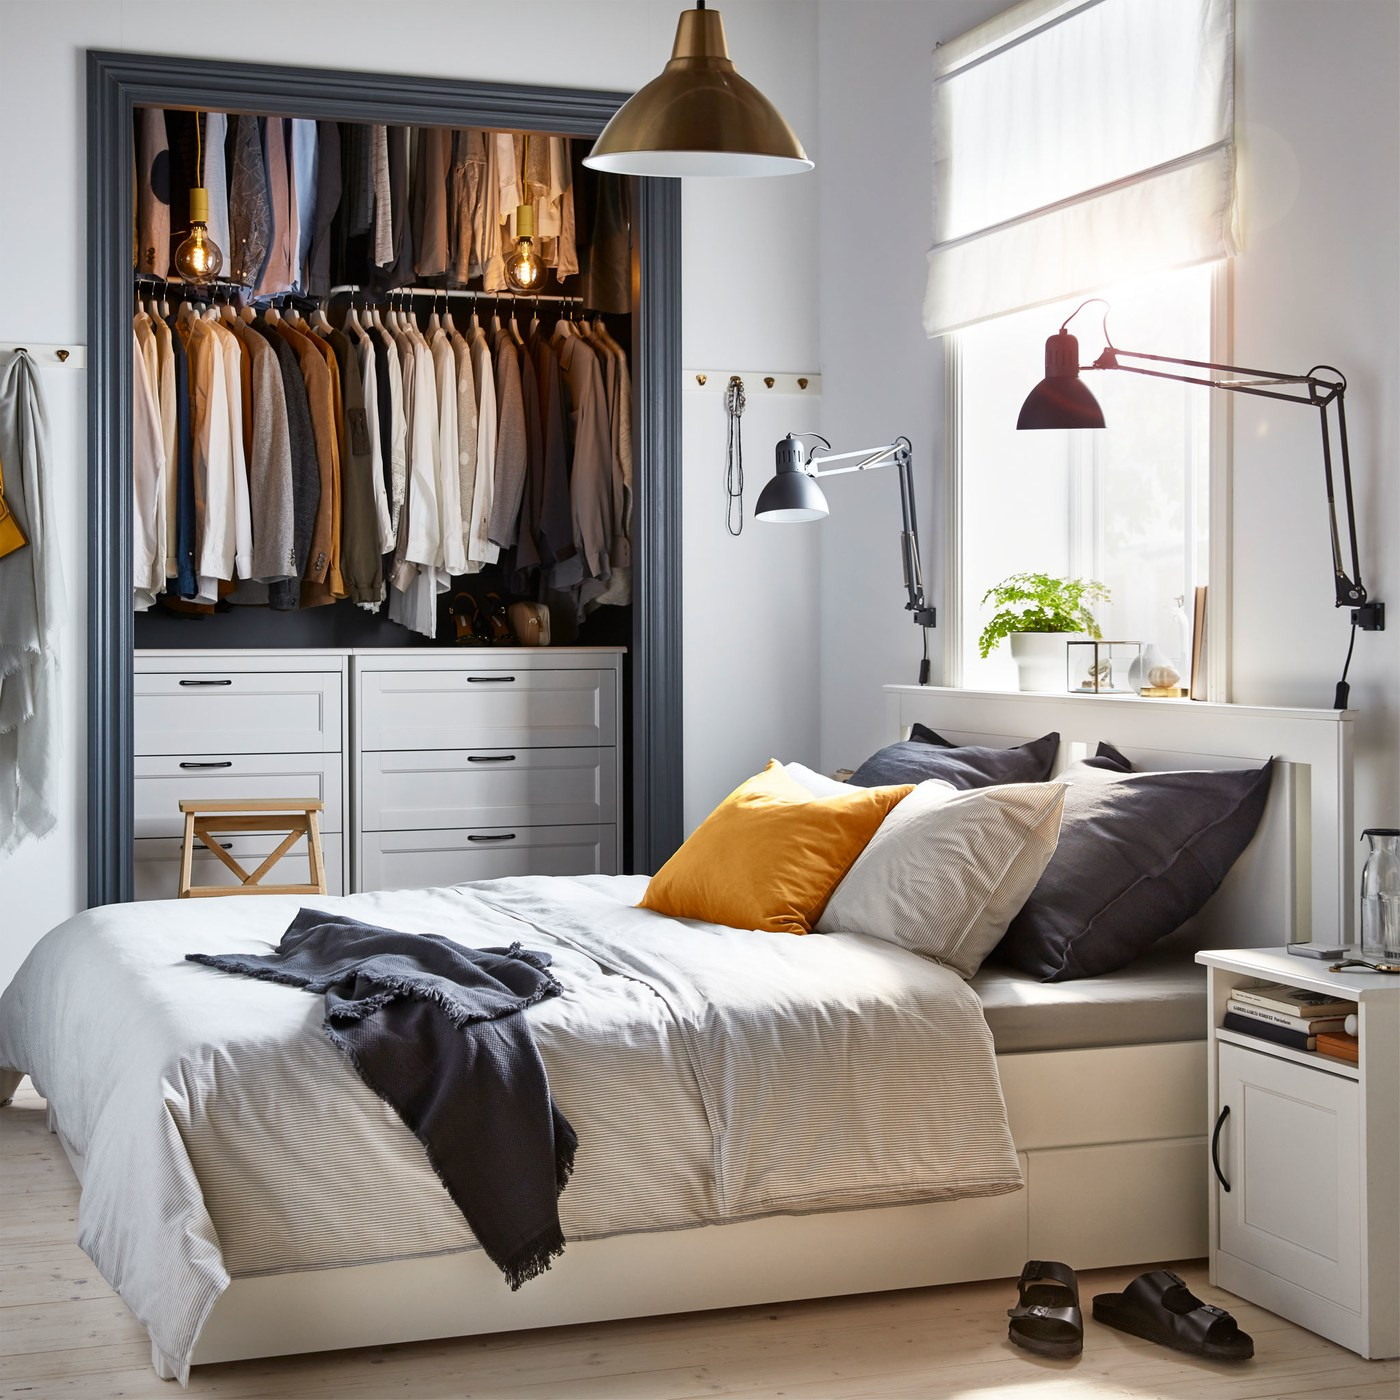 The Essential Guide To Bedroom Storage UAE - IKEA